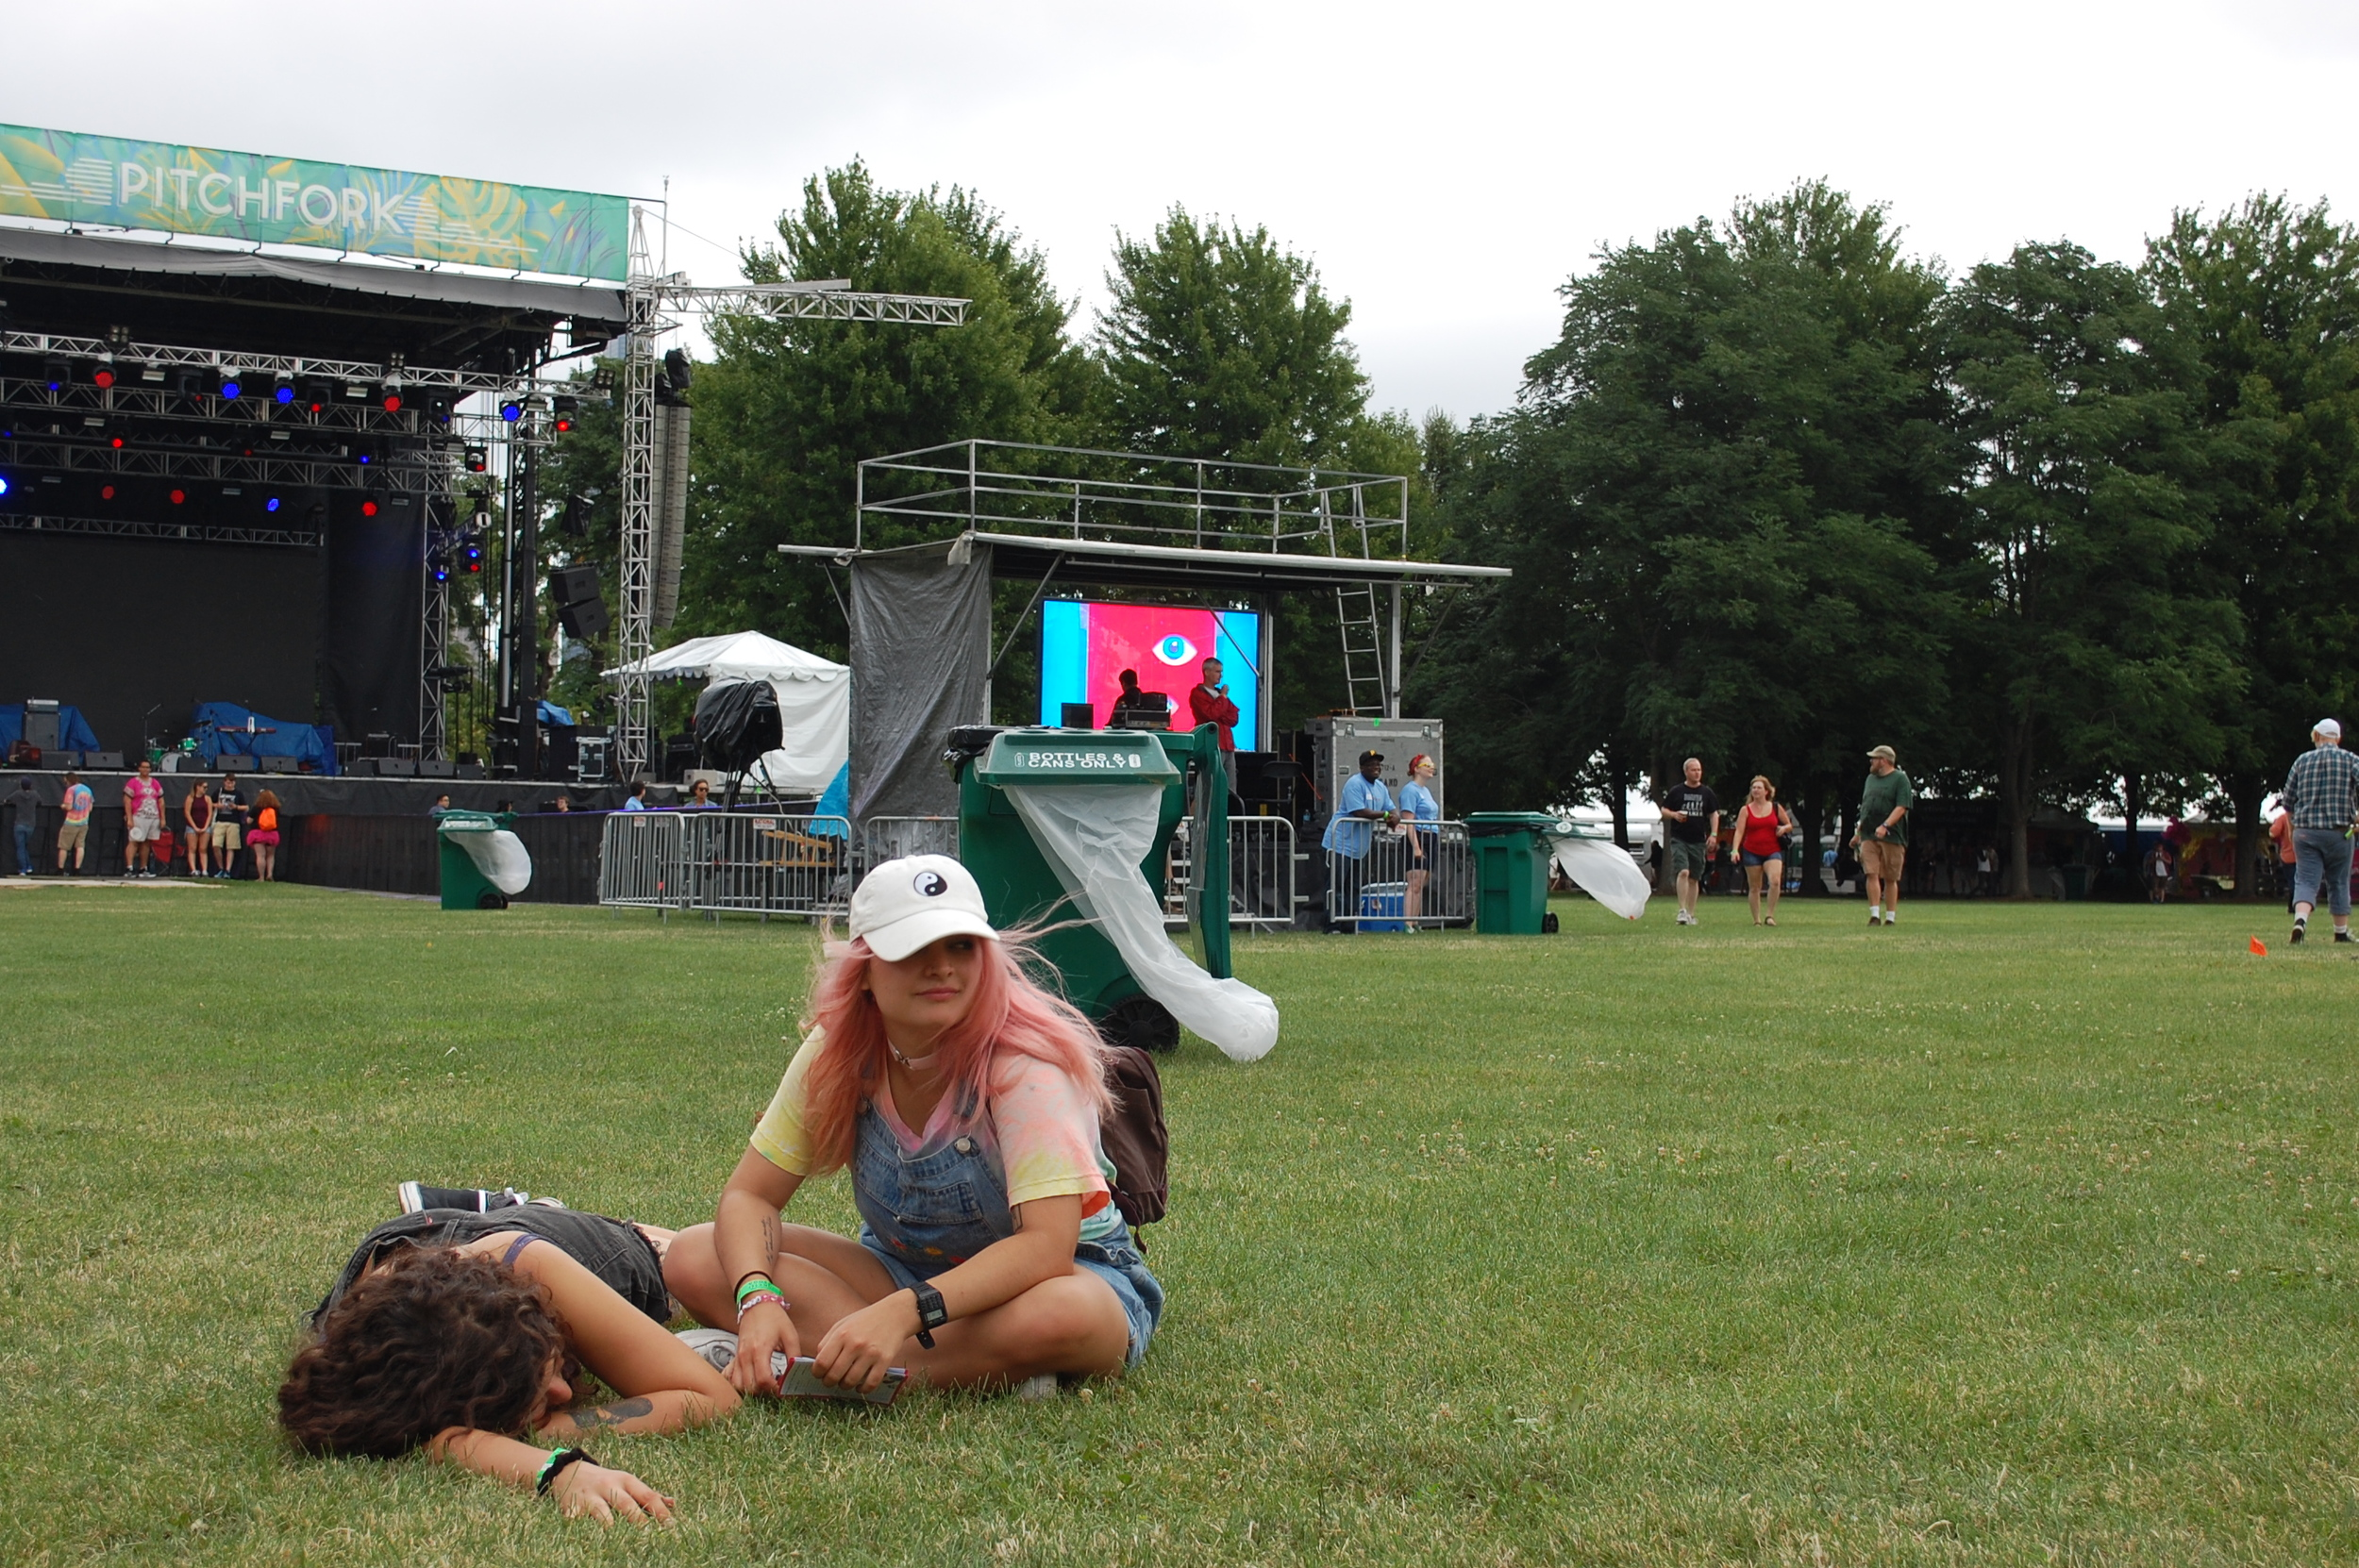 Festival attendees relax before the first performances begin on Friday.